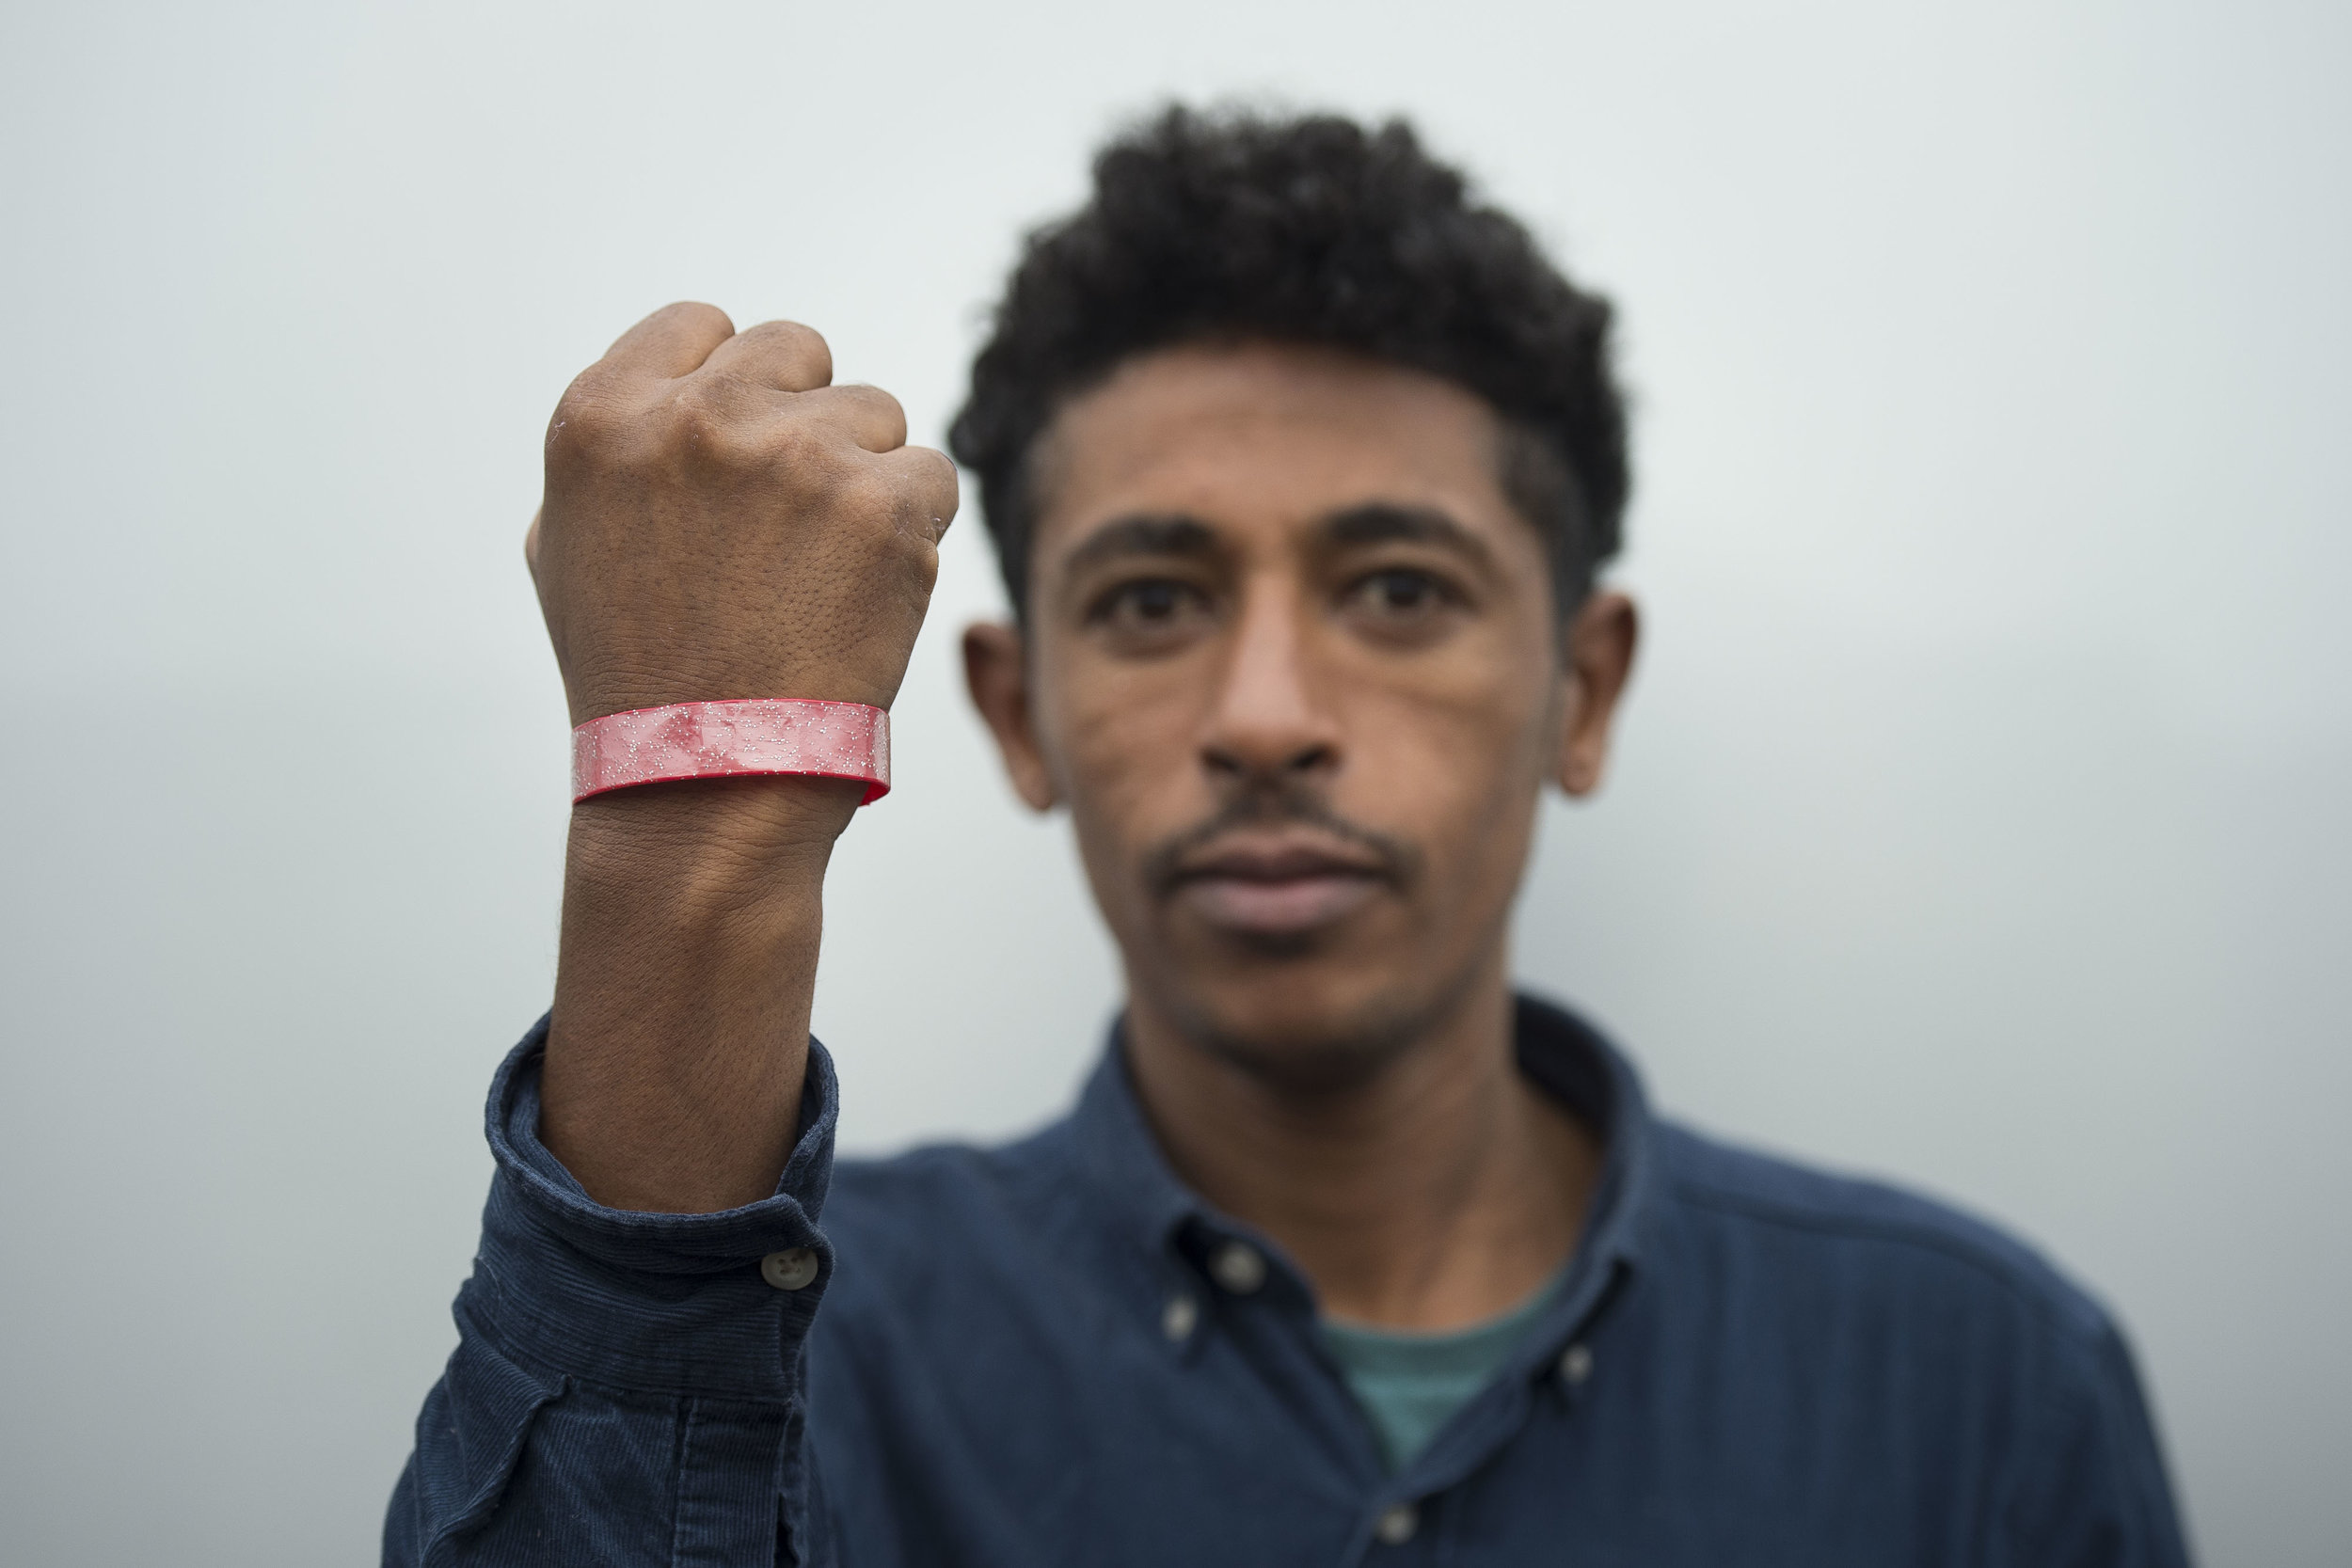 Asylum seekers staying at Lynx House on Newport Road in Cardiff, South Wales, have been given brightly coloured wrist bands to wear in order to claim food.Picture shows Zekaryas Eyob of Eritrea who was made to wear a wrist band.PIC Matthew Horwood© WALES NEWS SERVICE